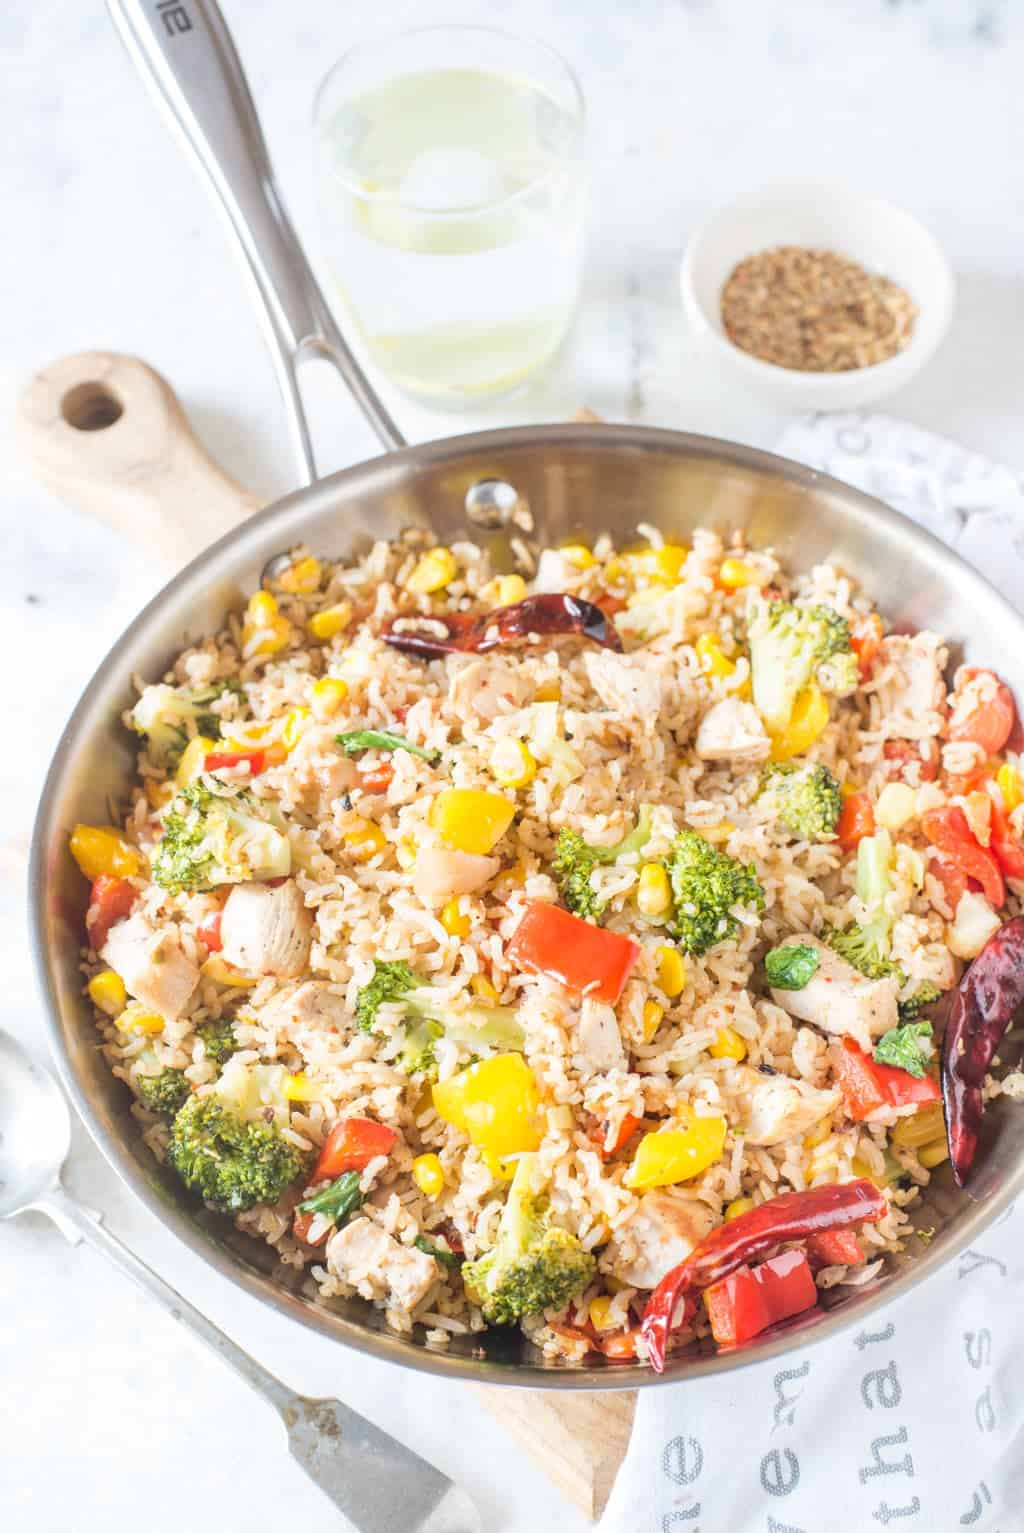 This Brown Rice Recipe with Chicken and vegetables is healthy, filling and easy to make. When made with leftover rice and precut vegetables, it would take less than 15 minutes.